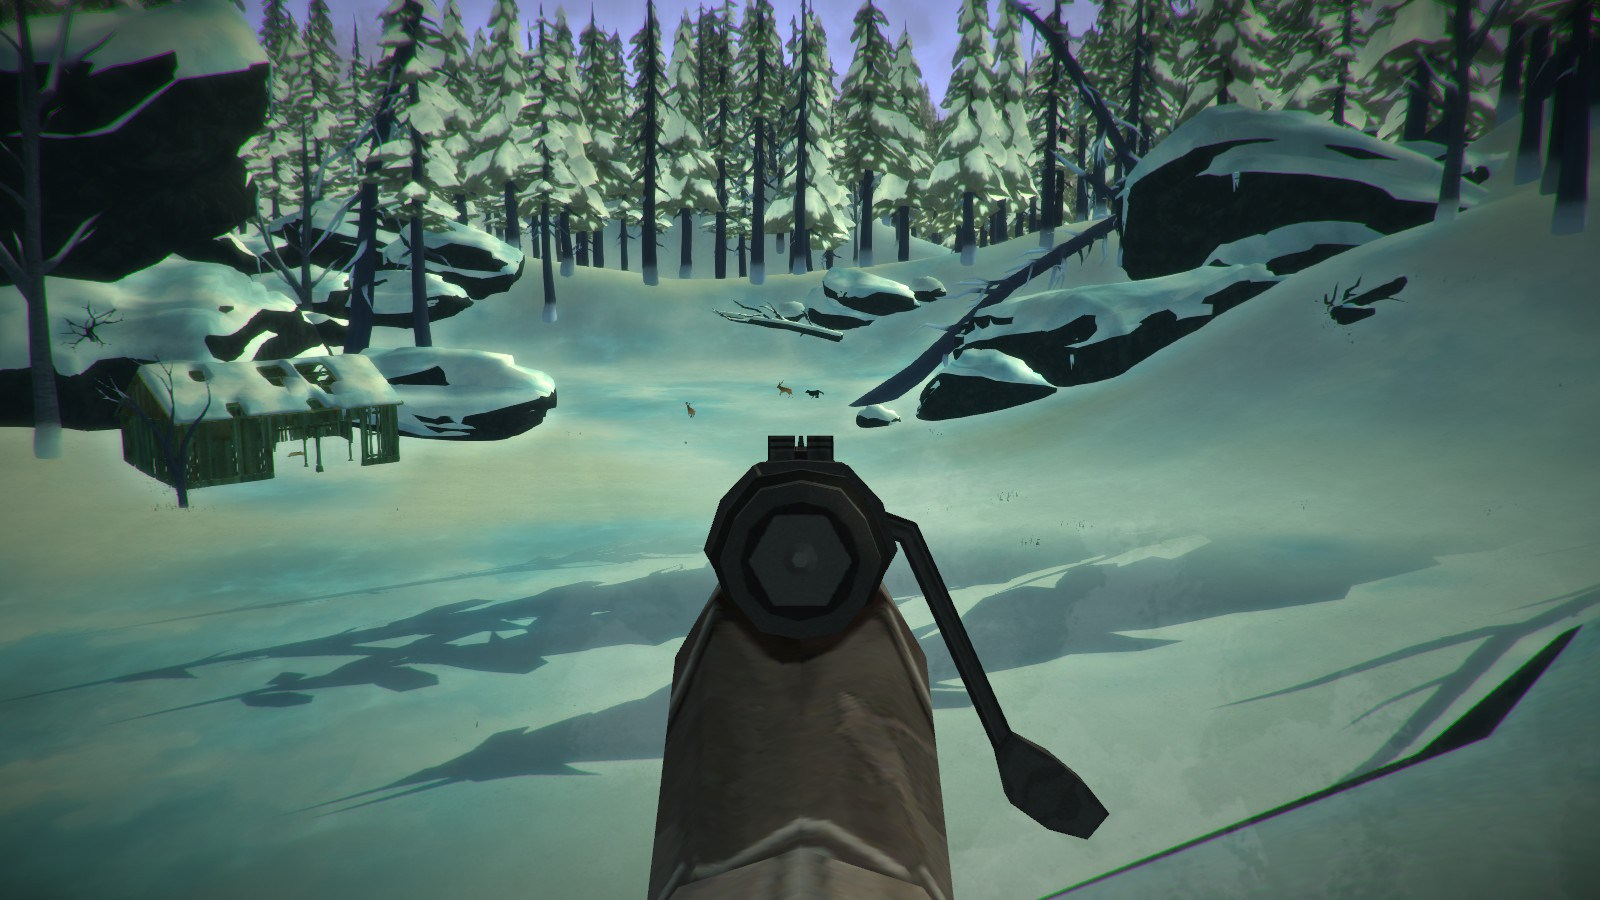 the-long-dark-image-screenshot-3.jpg - Long Dark, the